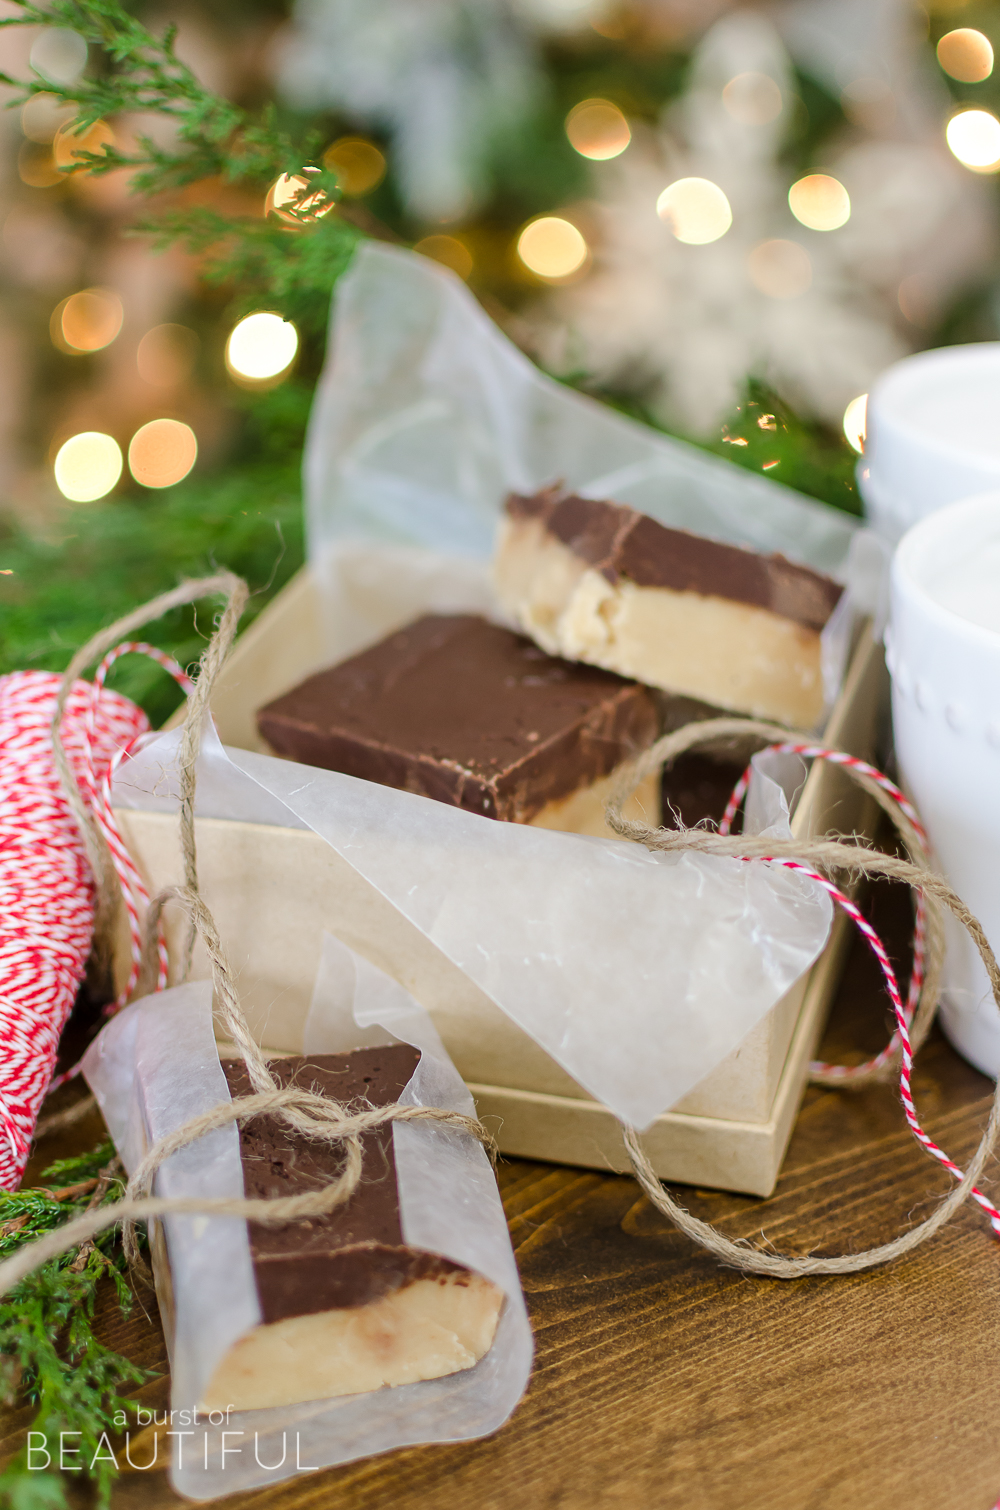 This rich and creamy Chocolate Peanut Butter Fudge will melt in your mouth. Wrap it up as a thoughtful and sweet holiday gift this year.